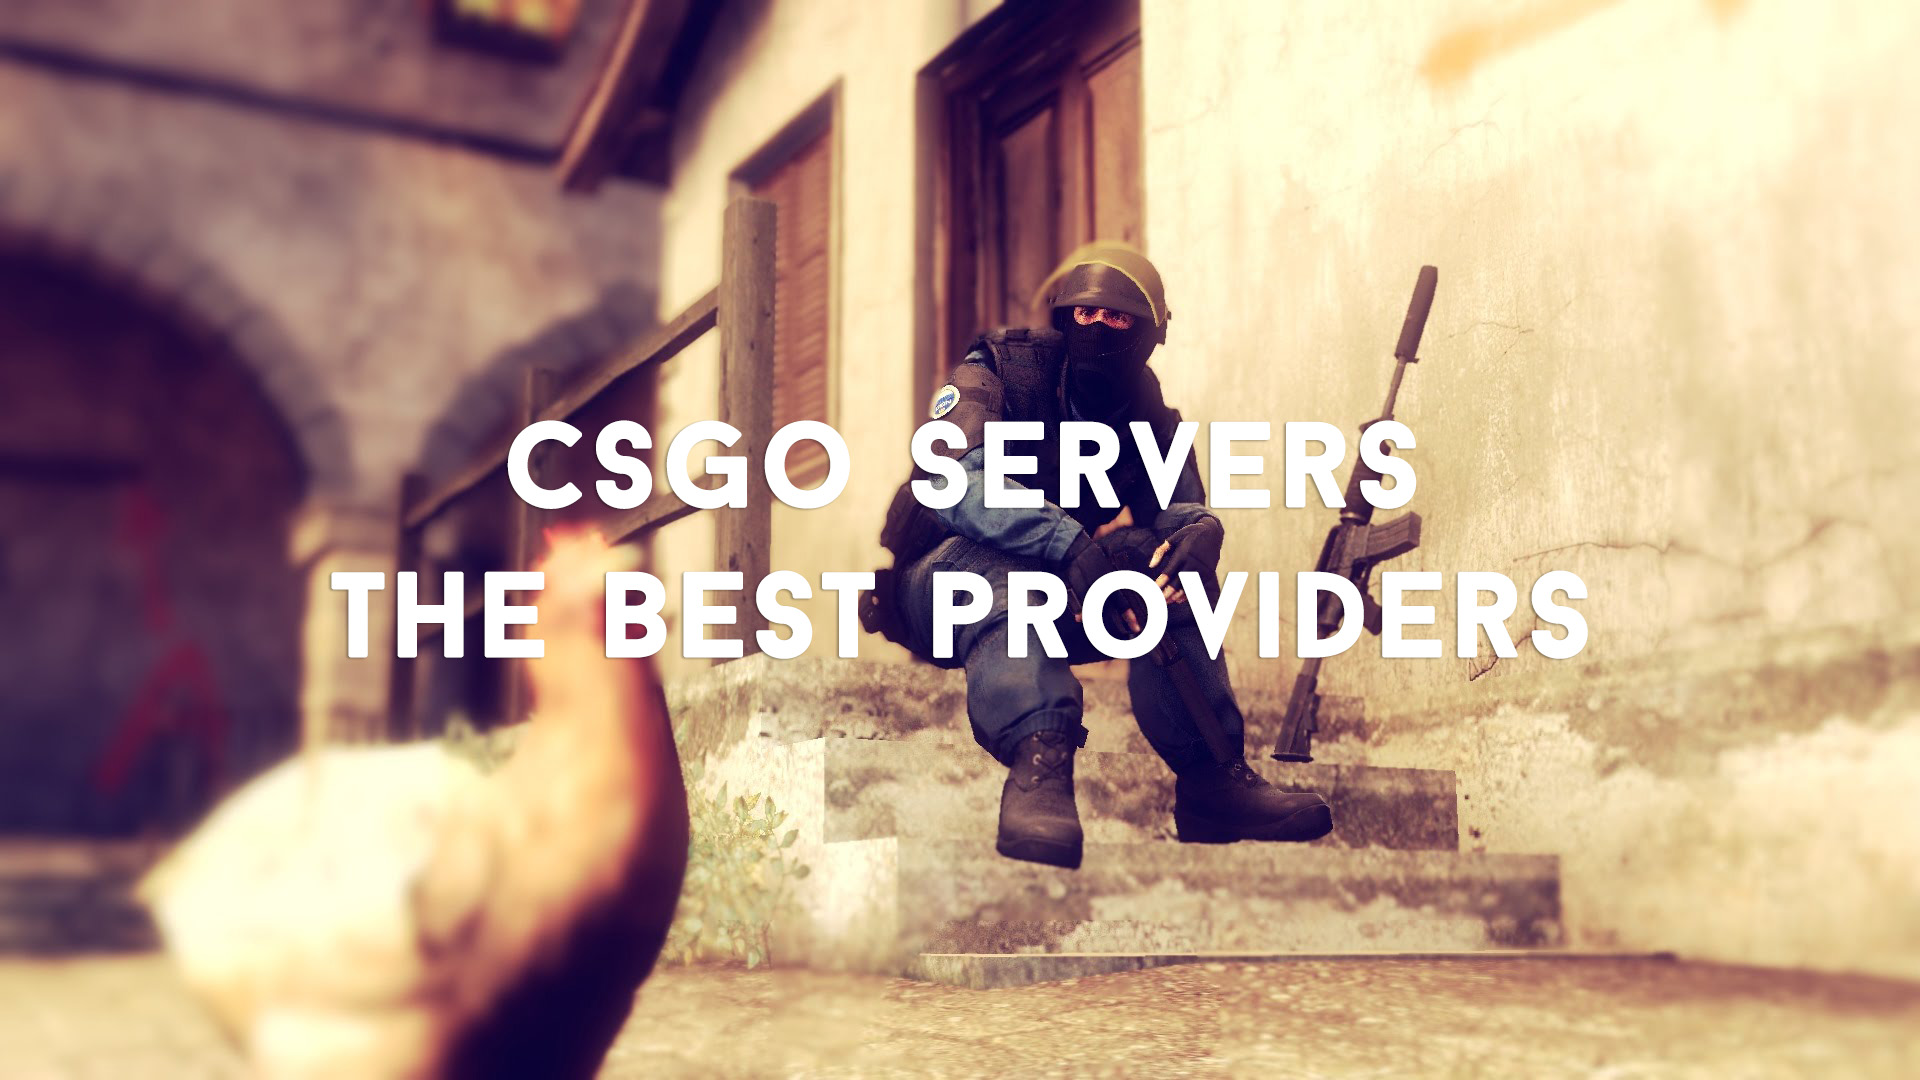 CSGO Servers - The Best Providers